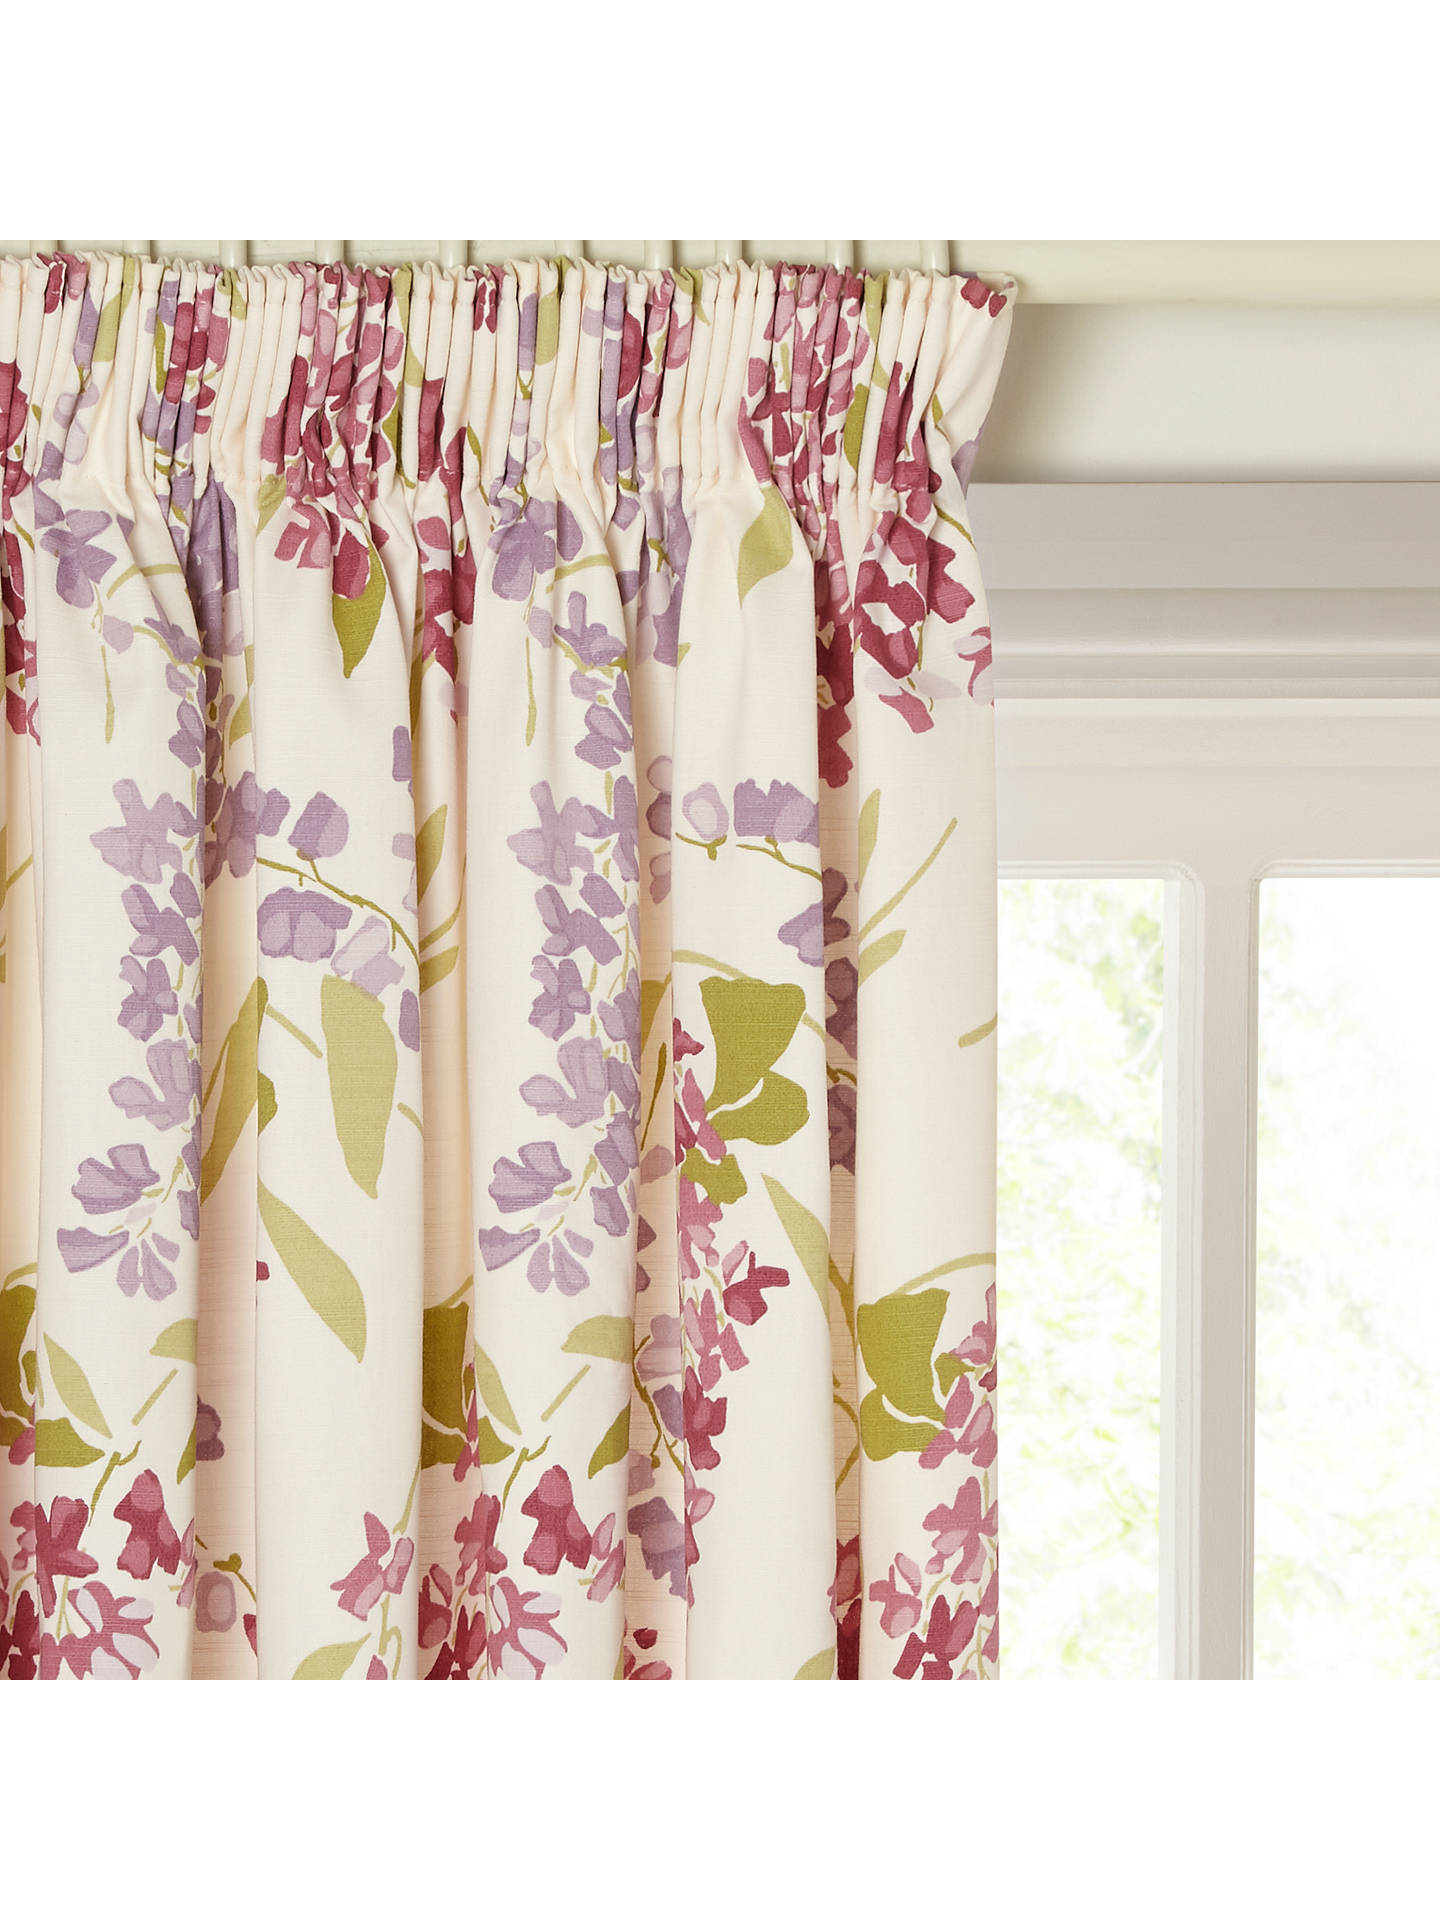 Buy John Lewis & Partners Wisteria Pair Lined Pencil Pleat Curtains, Pink / Purple, W117 x Drop 182cm Online at johnlewis.com